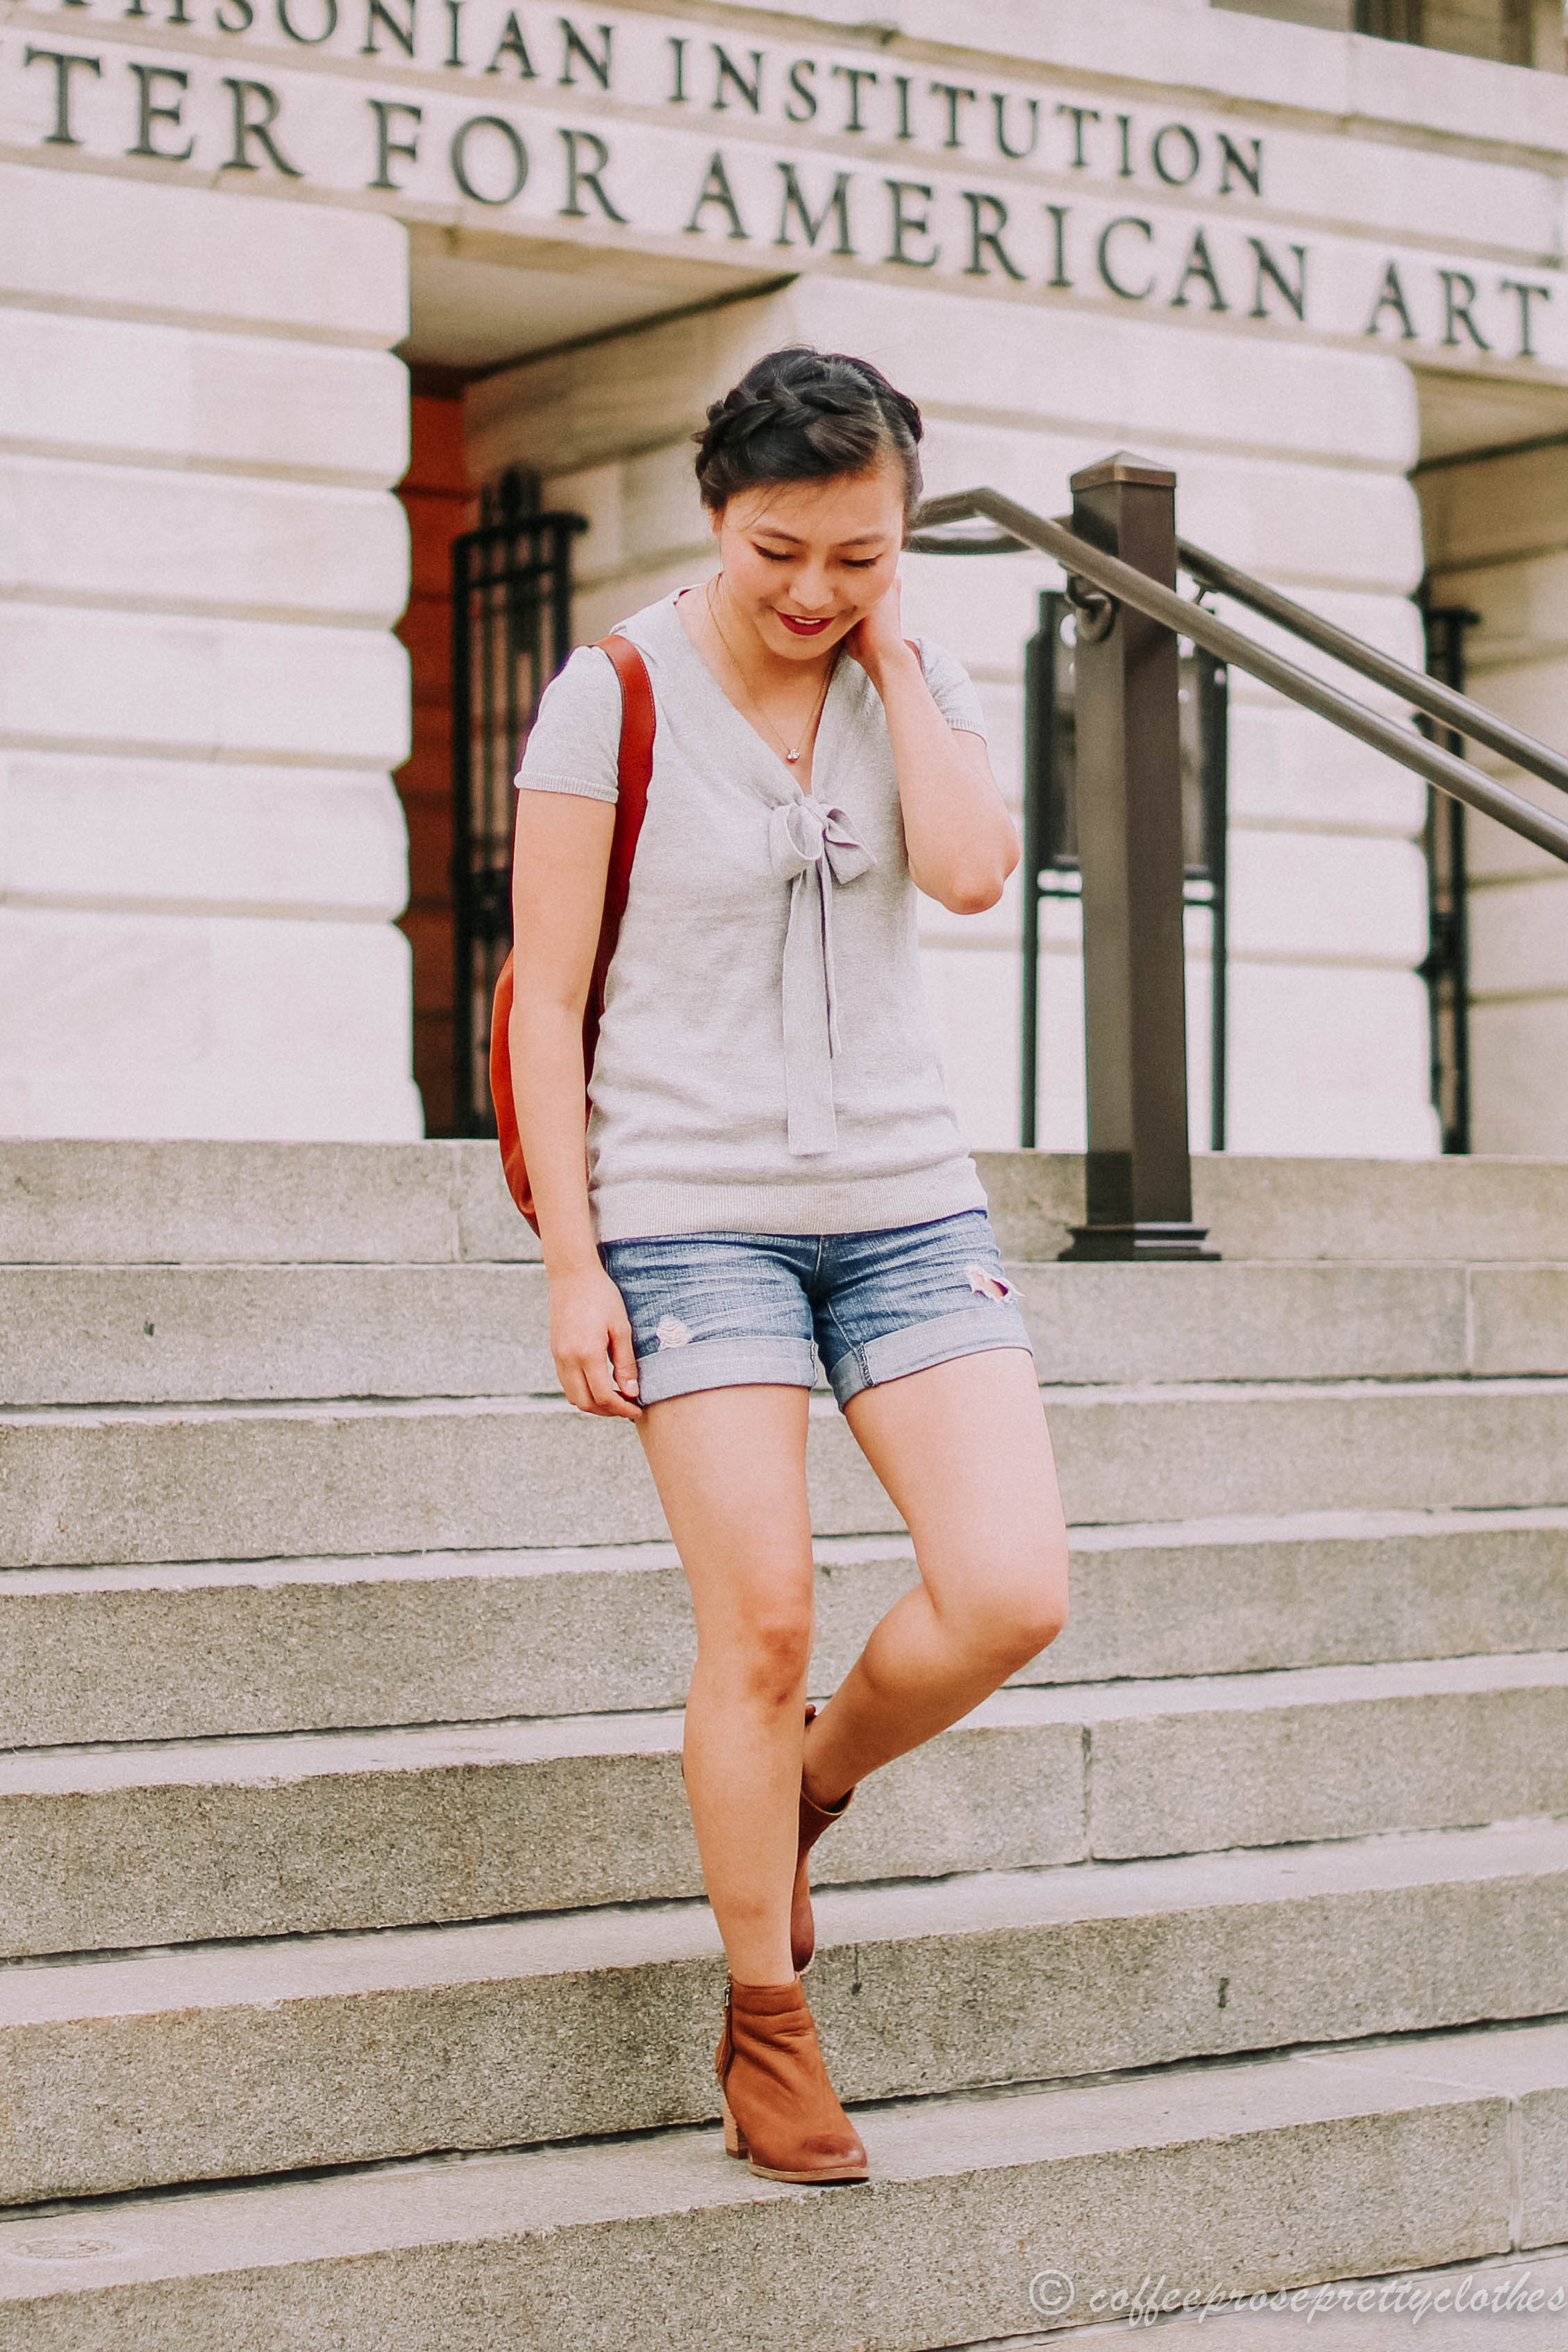 Madewell Transport Rucksack, Blondo waterproof booties, J.Crew Factory sweater, H&M shorts